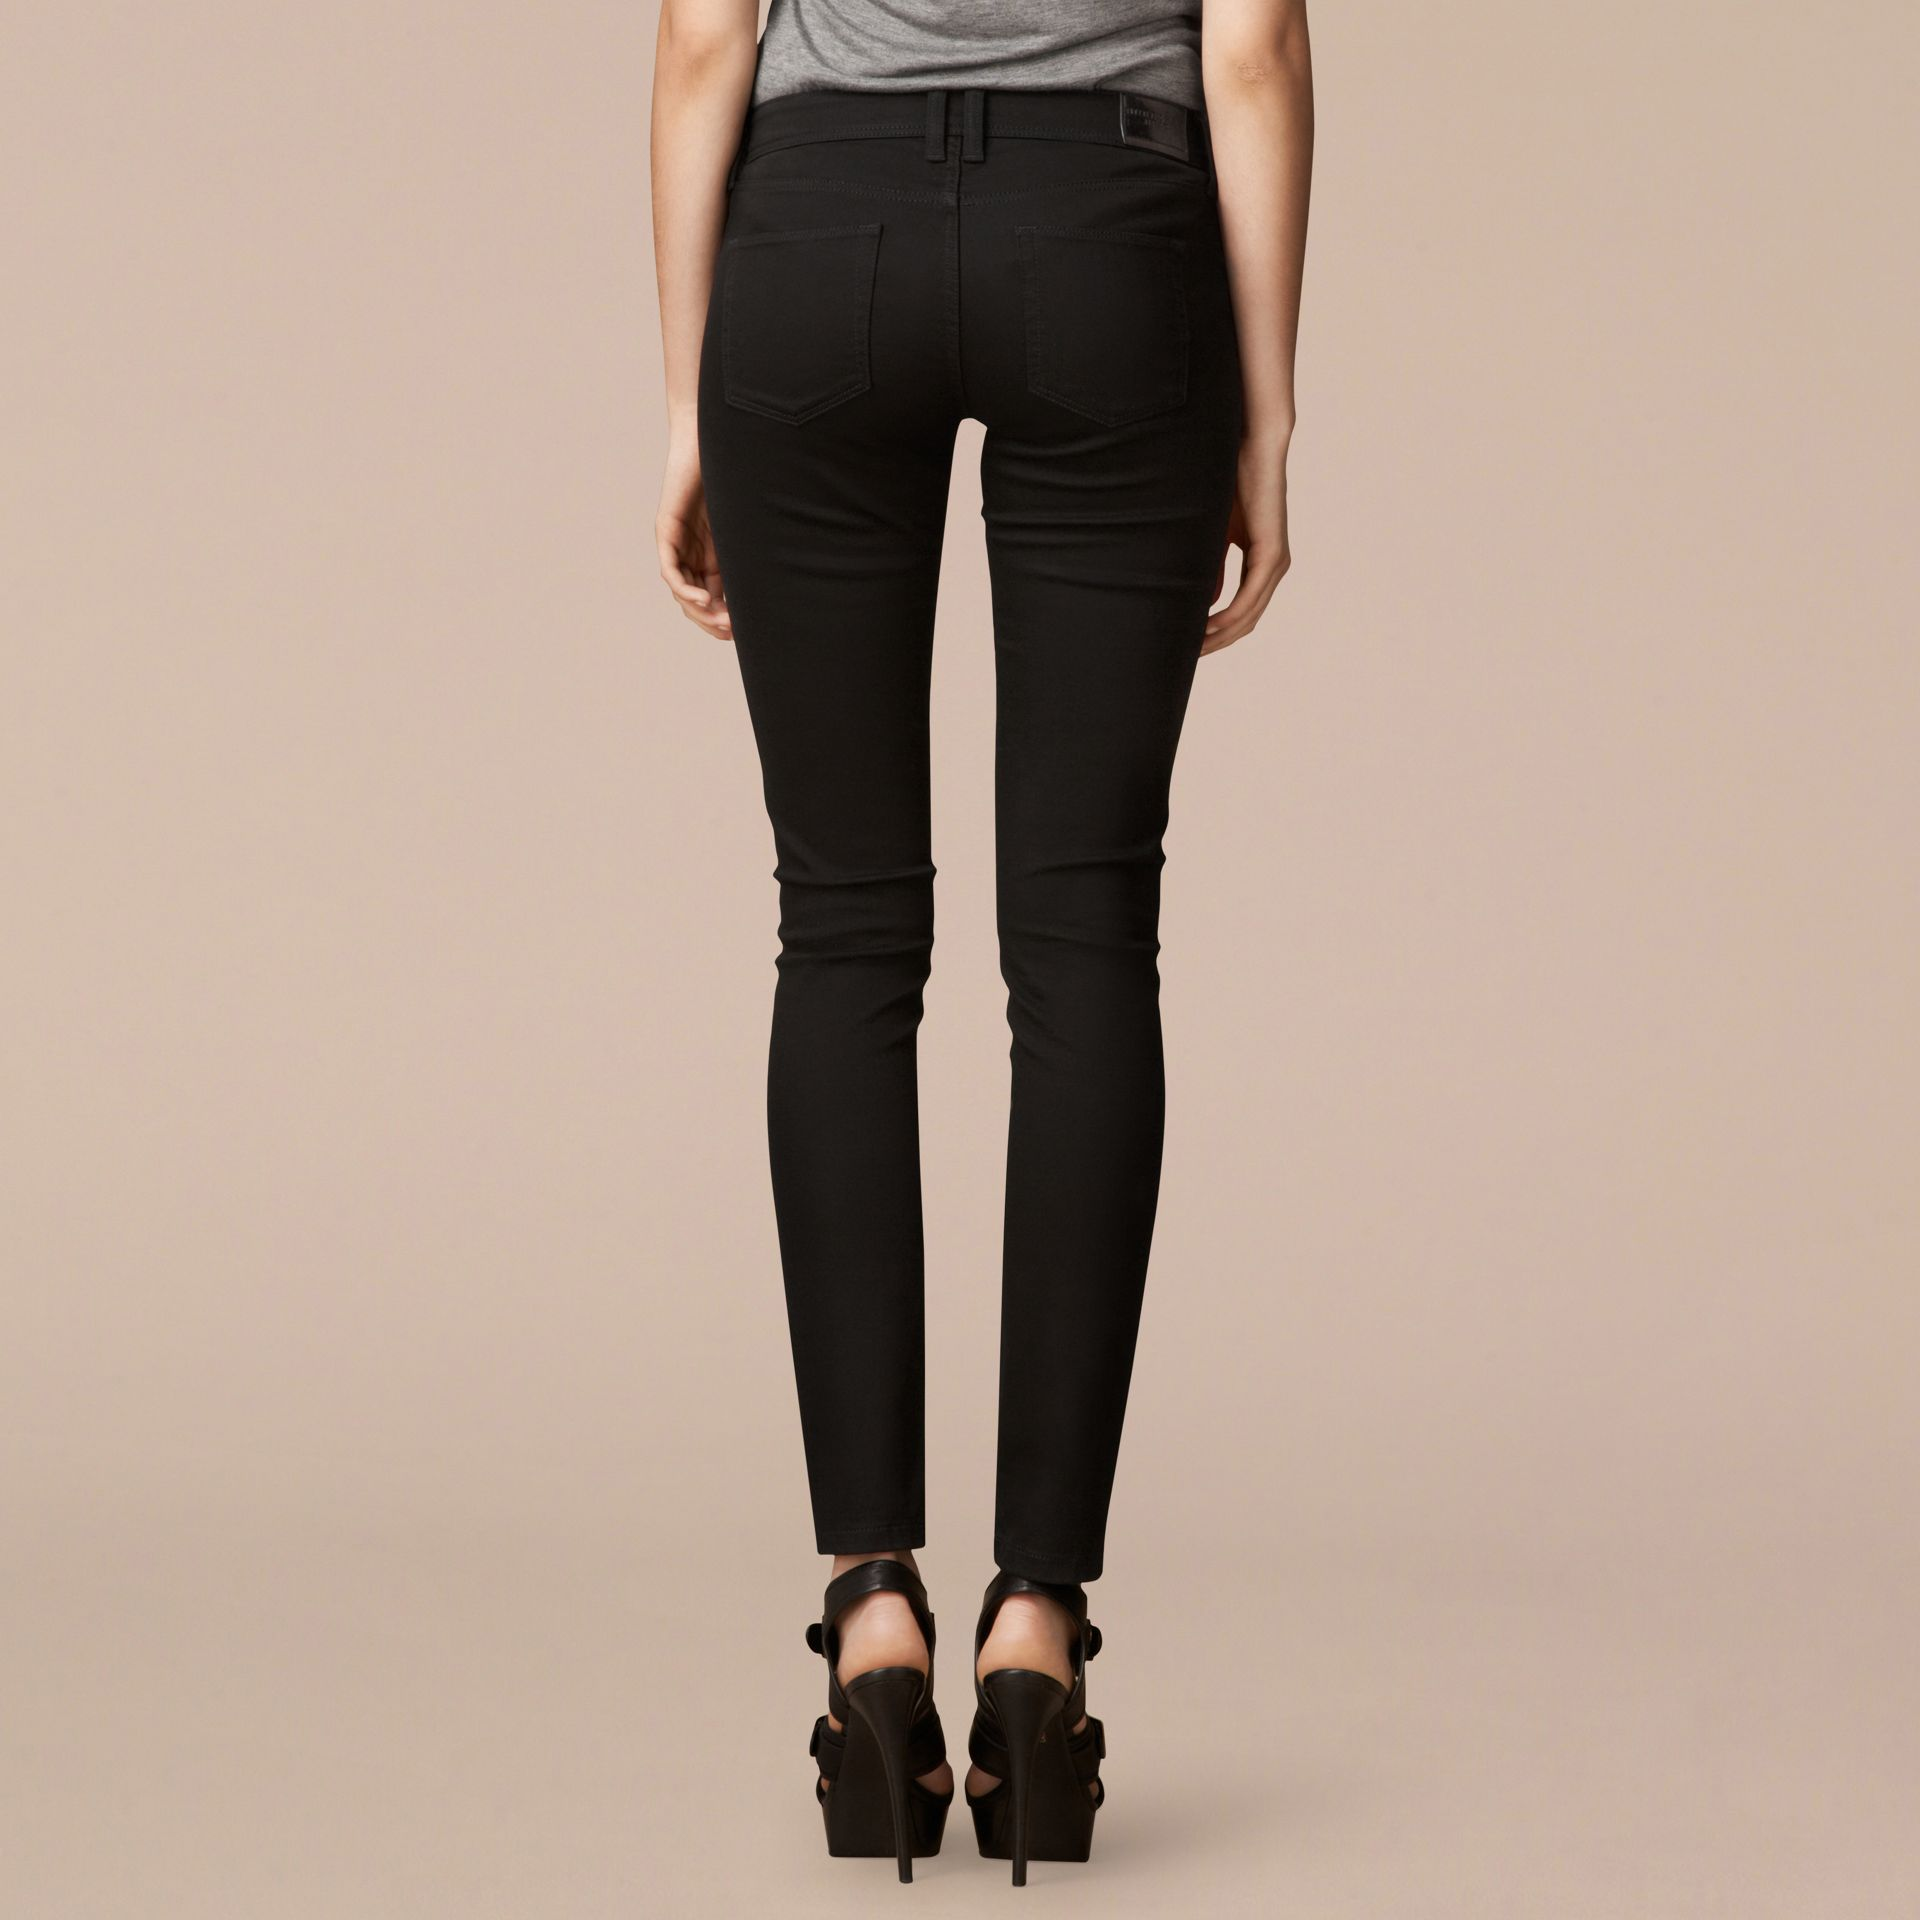 Black Skinny Fit Low-Rise Deep Black Jeans - gallery image 3